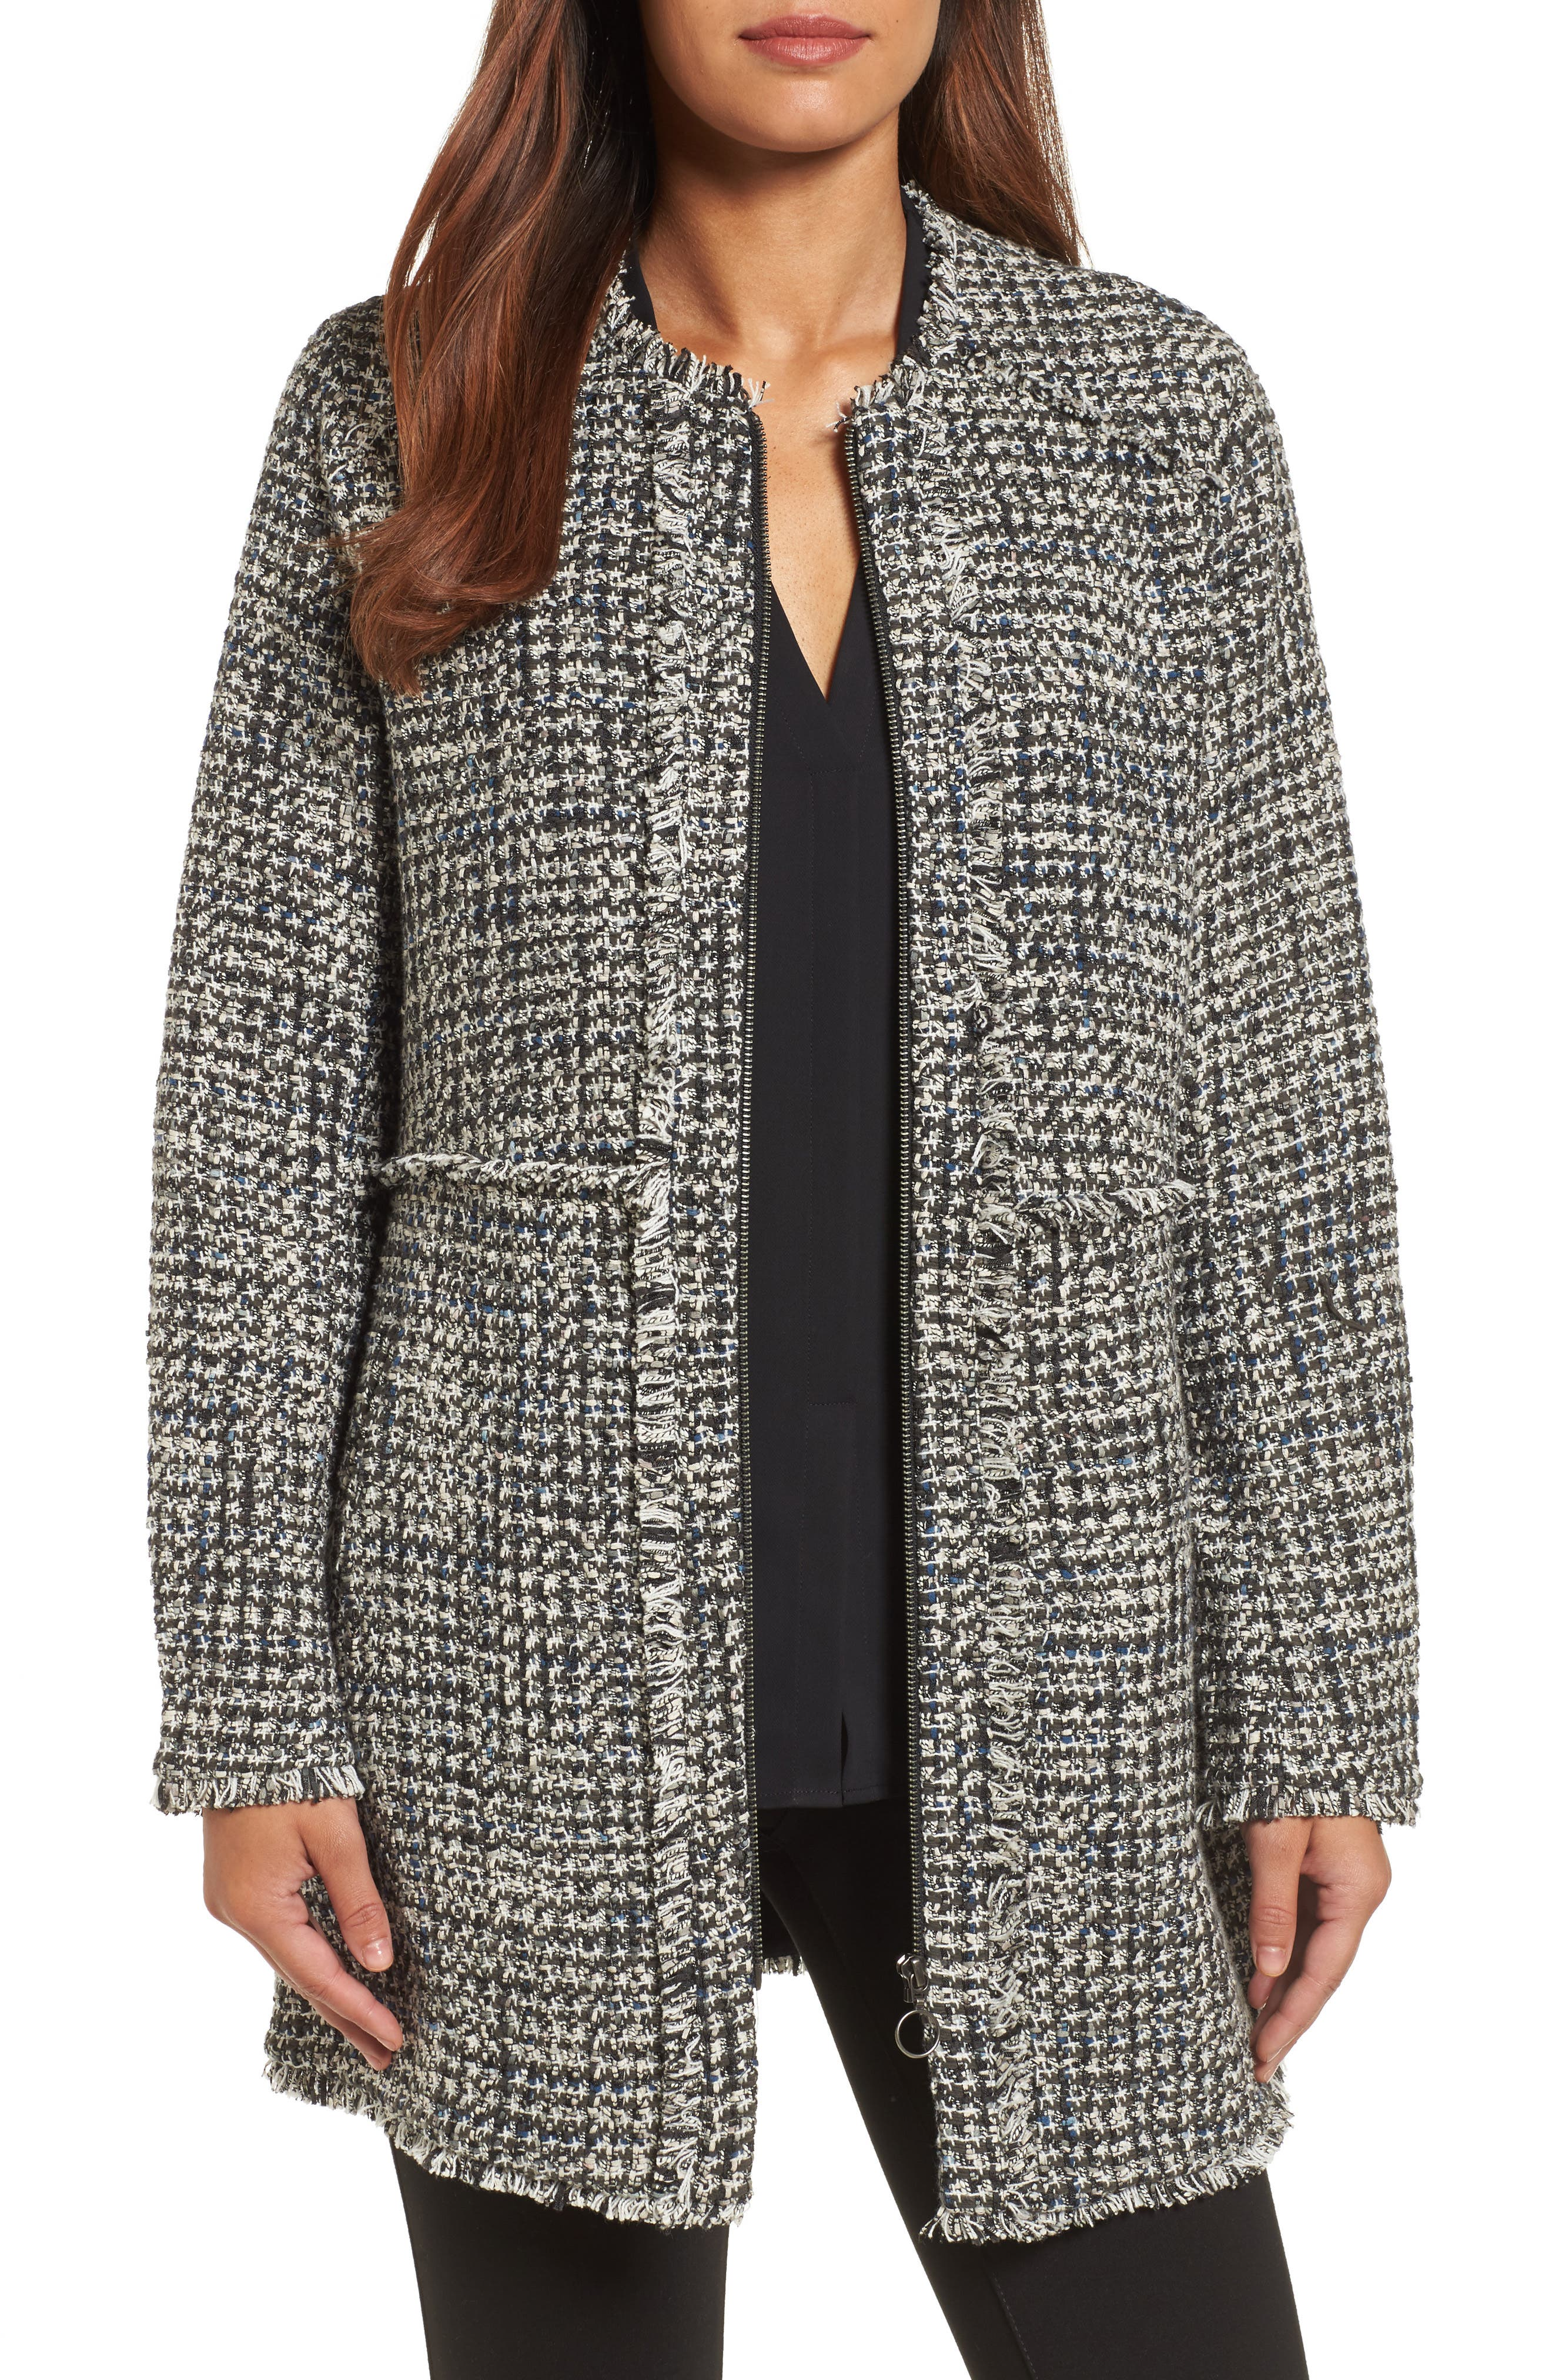 Main Image - NIC + Zoe Speckled Tweed Jacket